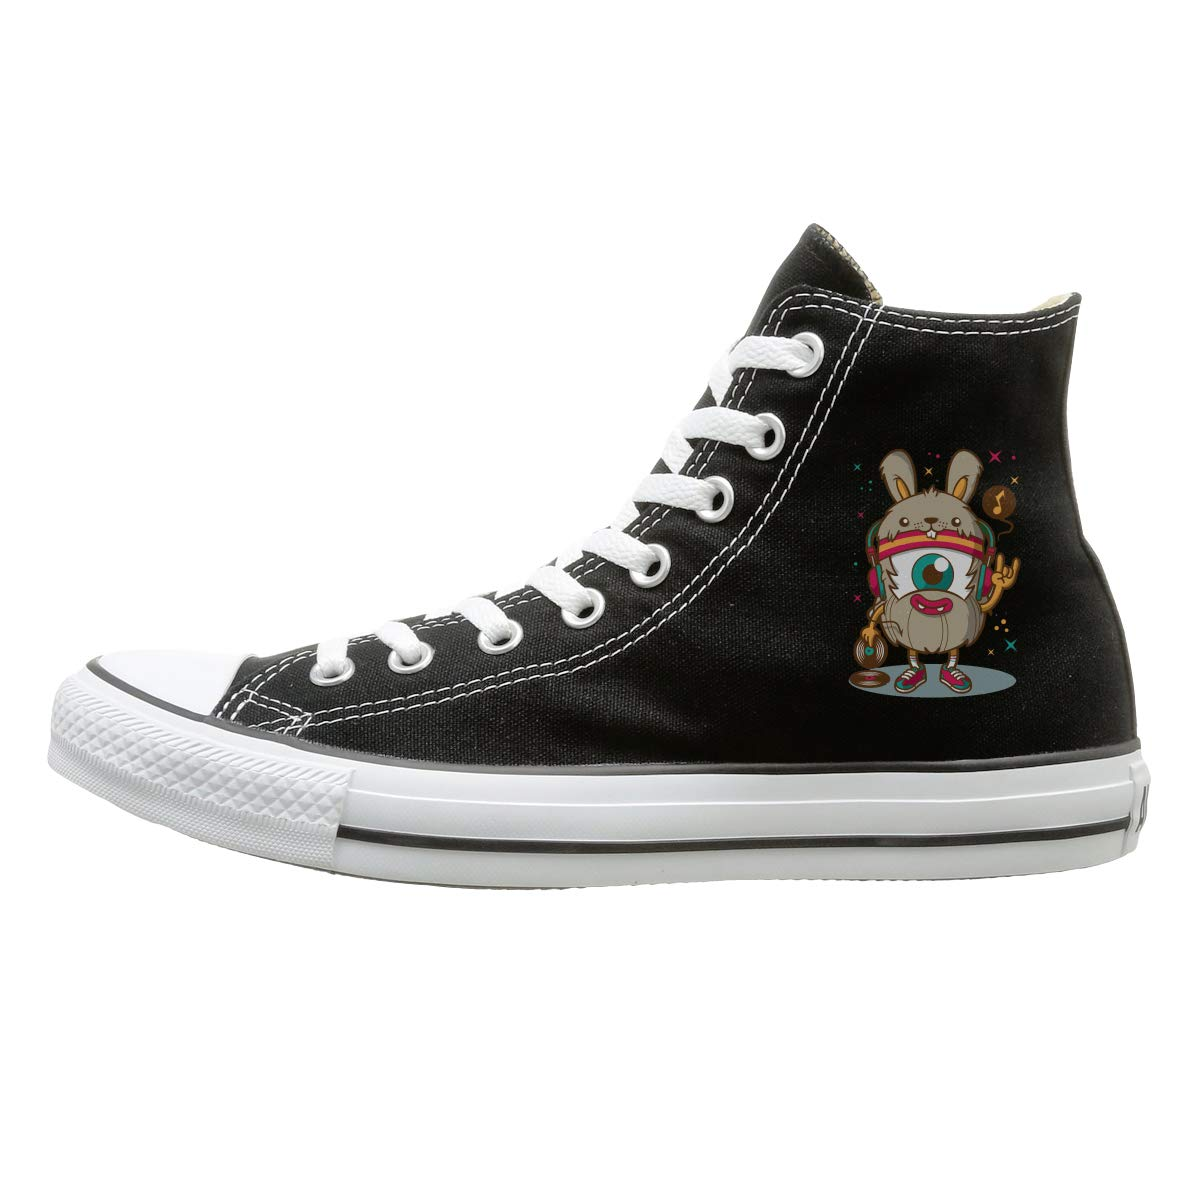 Buecoutes Cyclops Canvas Shoes High Top Sport Black Sneakers Unisex Style